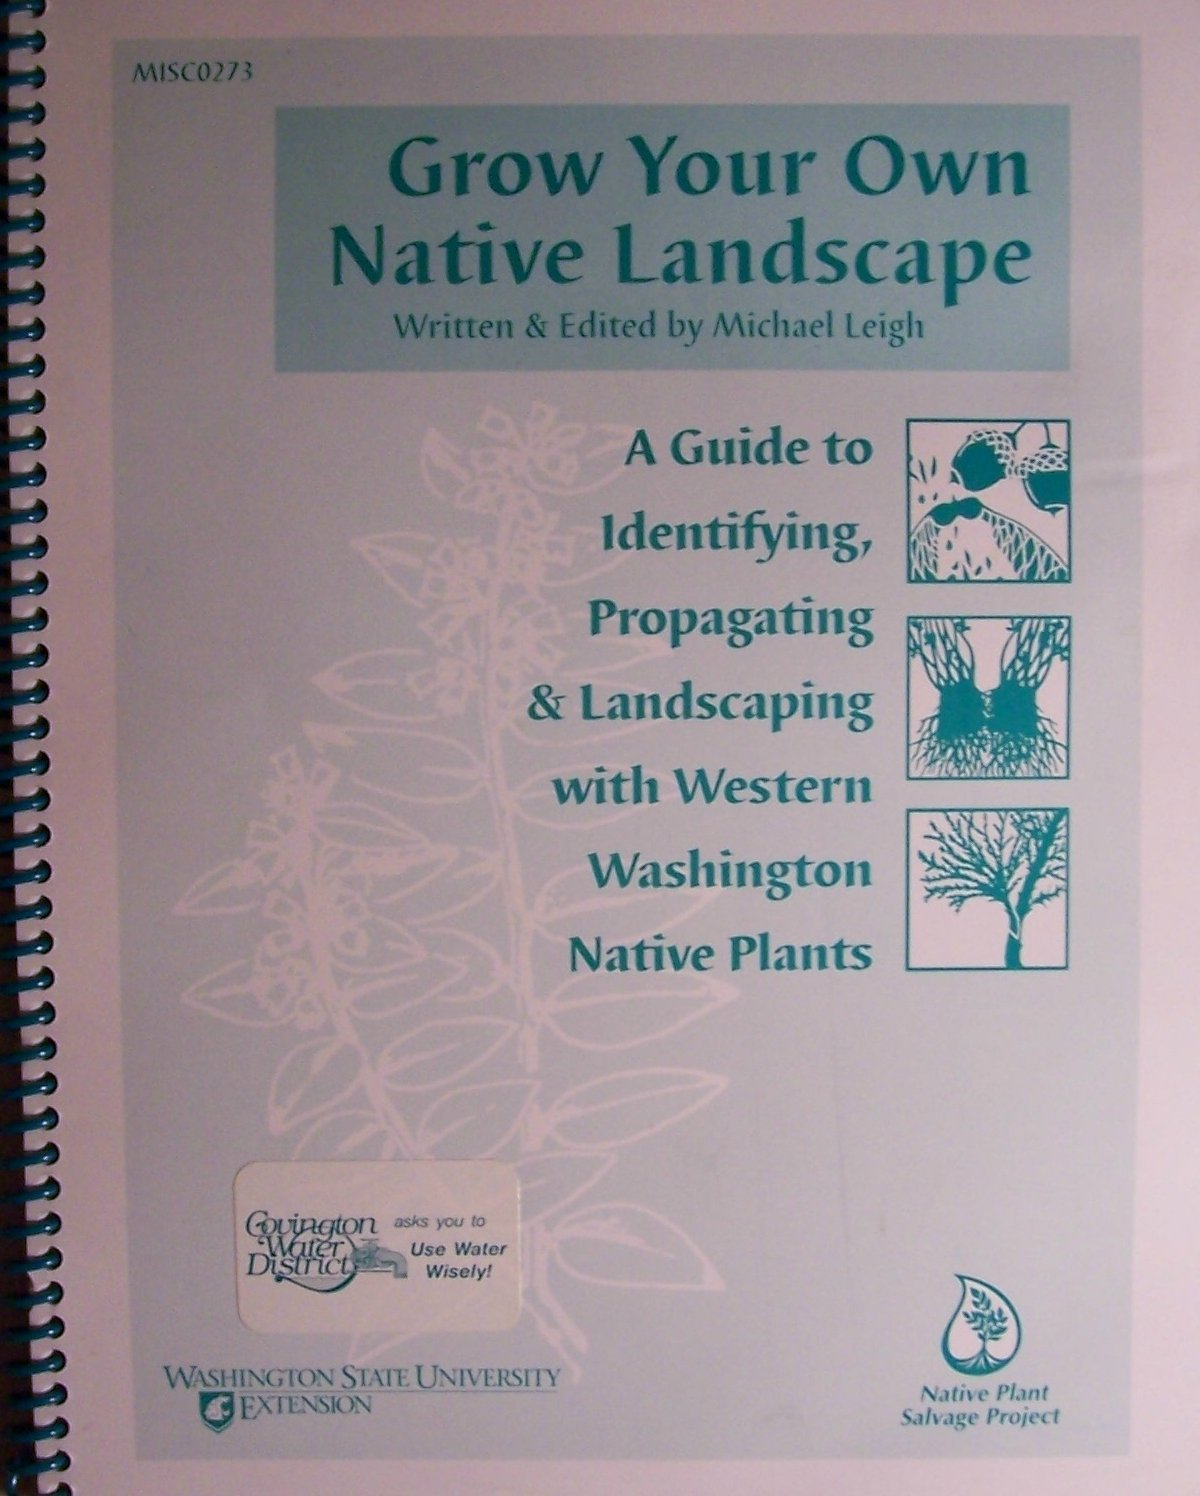 GROW YOUR OWN NATIVE LANDSCAPE A Guide toIdentifying, Propagating and Landscaping with Western WashingtonNative Plants, Michael Leigh